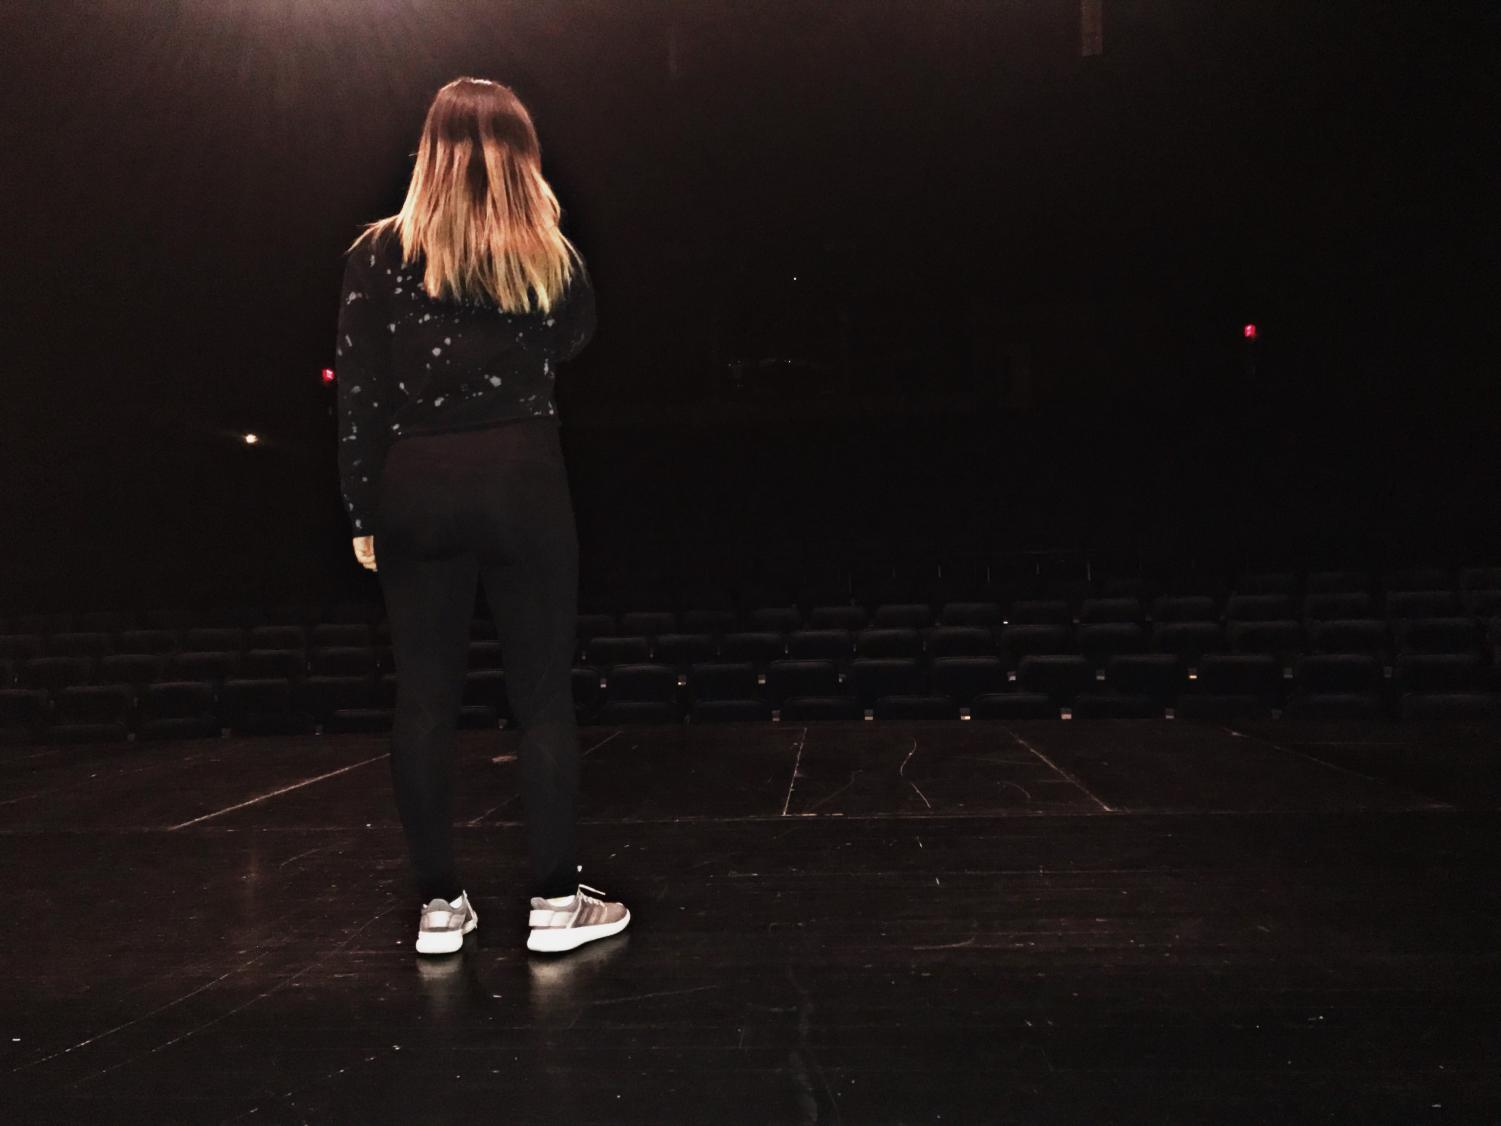 """Standing center stage, junior soloist Emily Chriss rehearses her song for the vocal pops concert. """"I can get nervous when I'm performing, but I push through the nerves and keep going,"""" Chriss said. She auditioned with the song """"Always remember us this way"""" this year after being chosen last year to sing in the concert."""